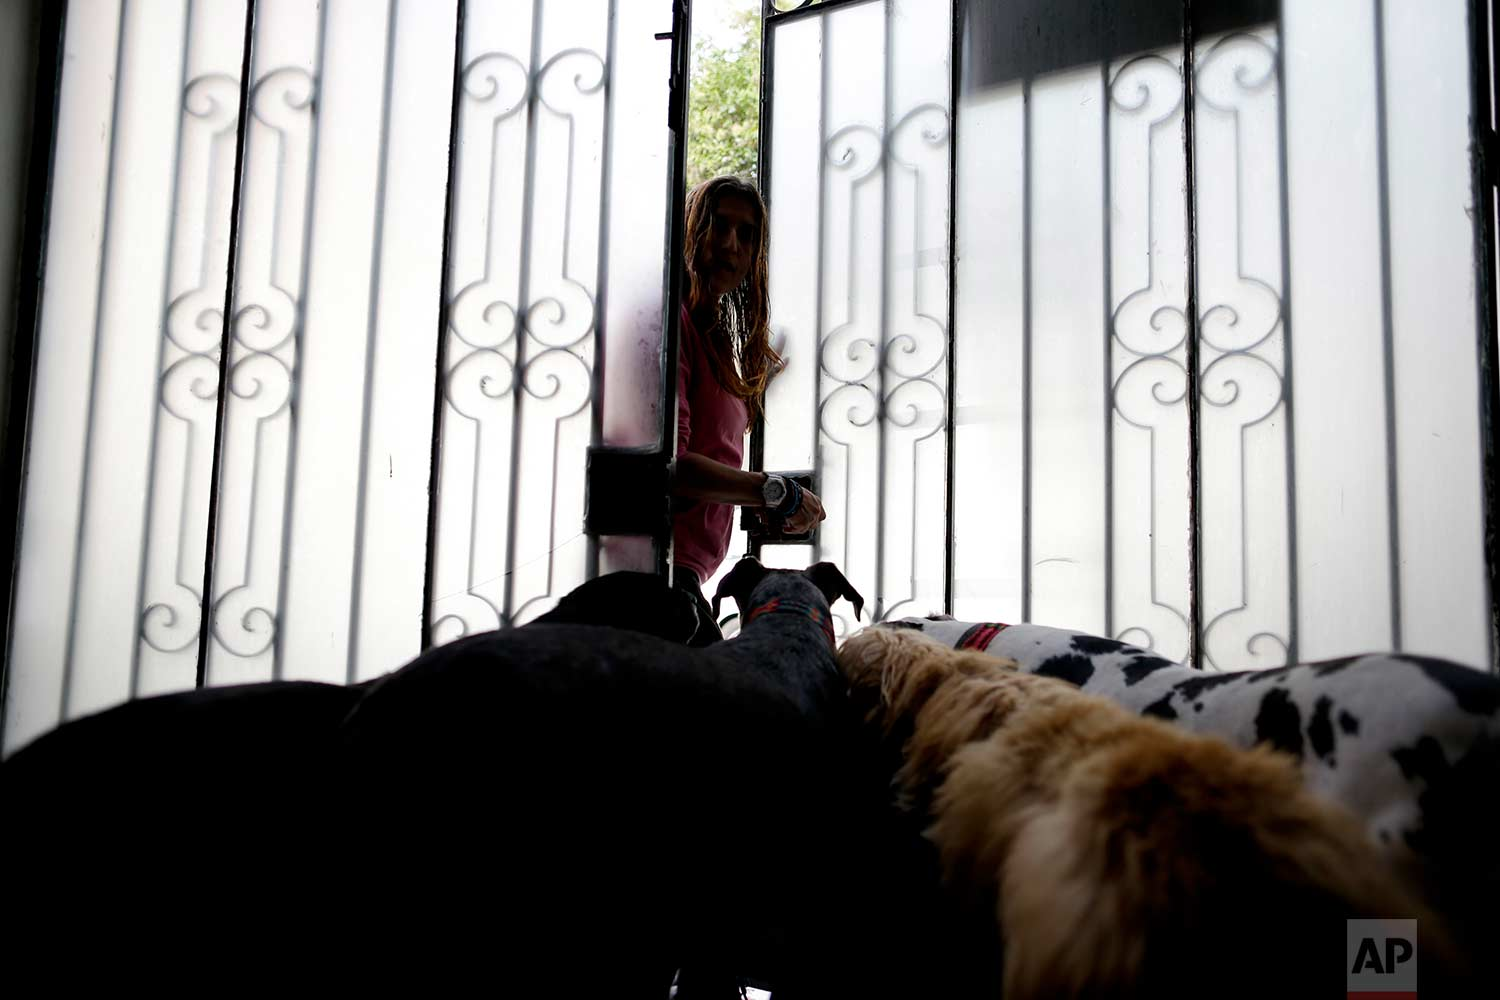 Mariam Luzan is greeted by four of her dogs at the entrance of their temporary home in the aftermath of a 7.1-magnitude earthquake, in Mexico City, Friday, Sept. 22, 2017. Luzan and her husband were obligated to abandon their animal rescue home with their 50 dogs and pet pig after  rescuers told them that they had a gas leak and needed to leave immediately. (AP Photo/Natacha Pisarenko)